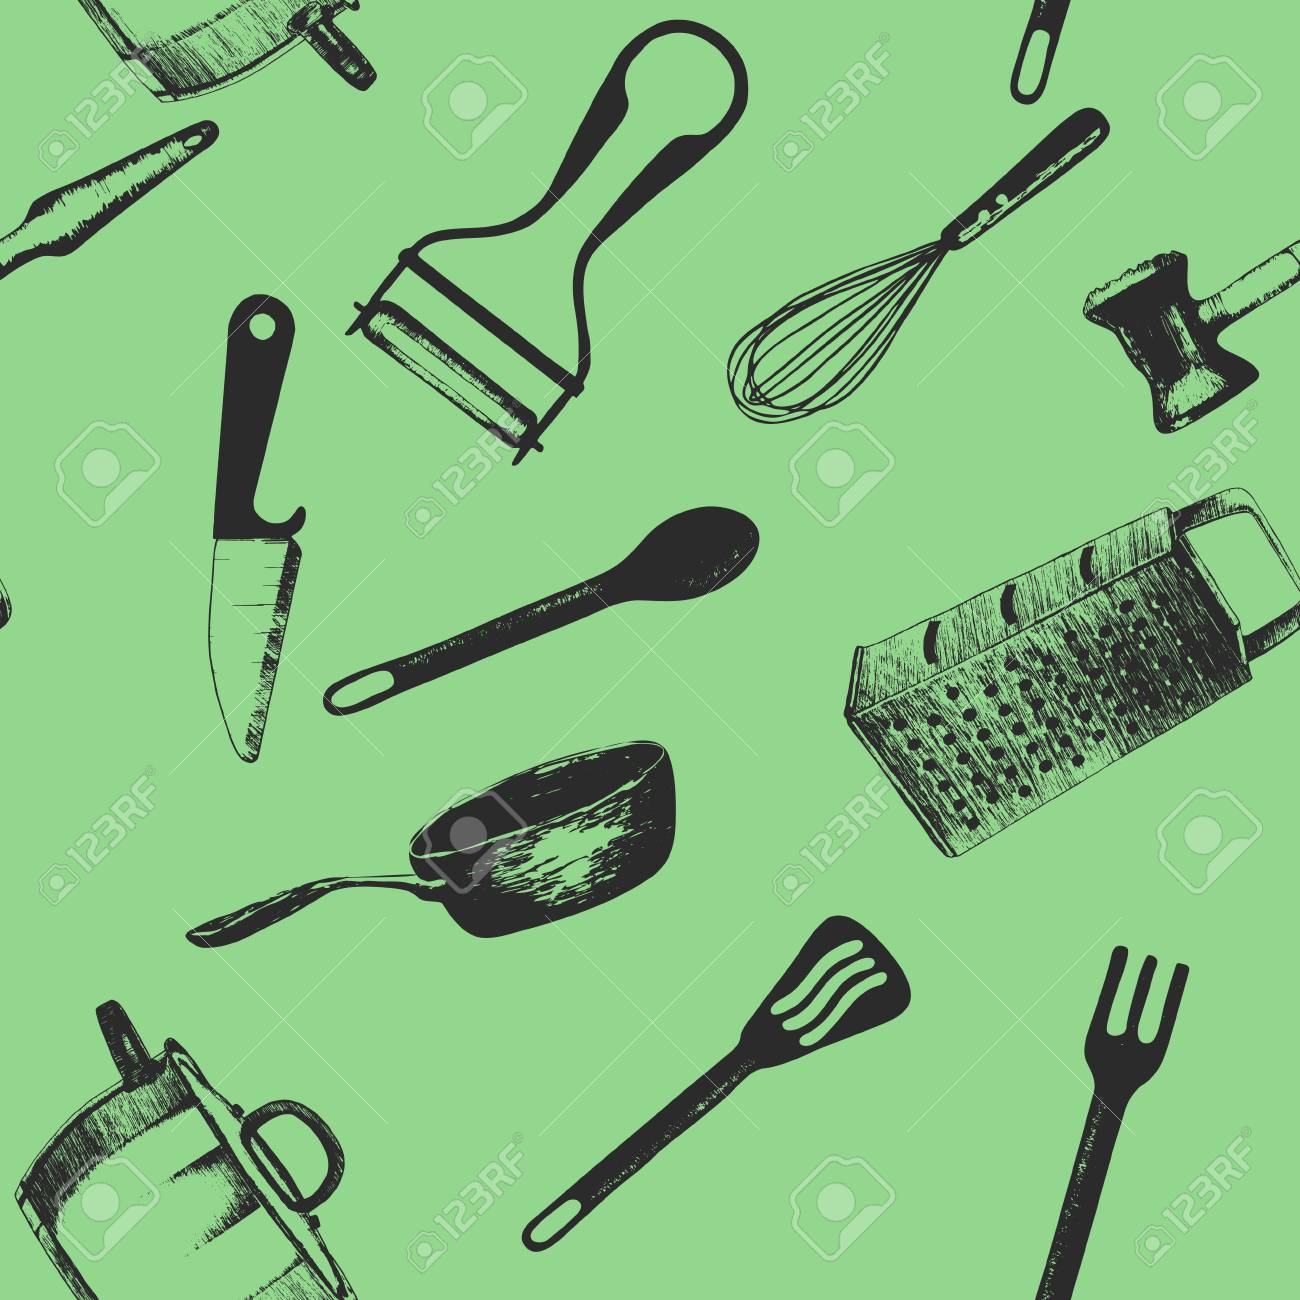 Cooking utensils and kitchen tools seamless background doodle..